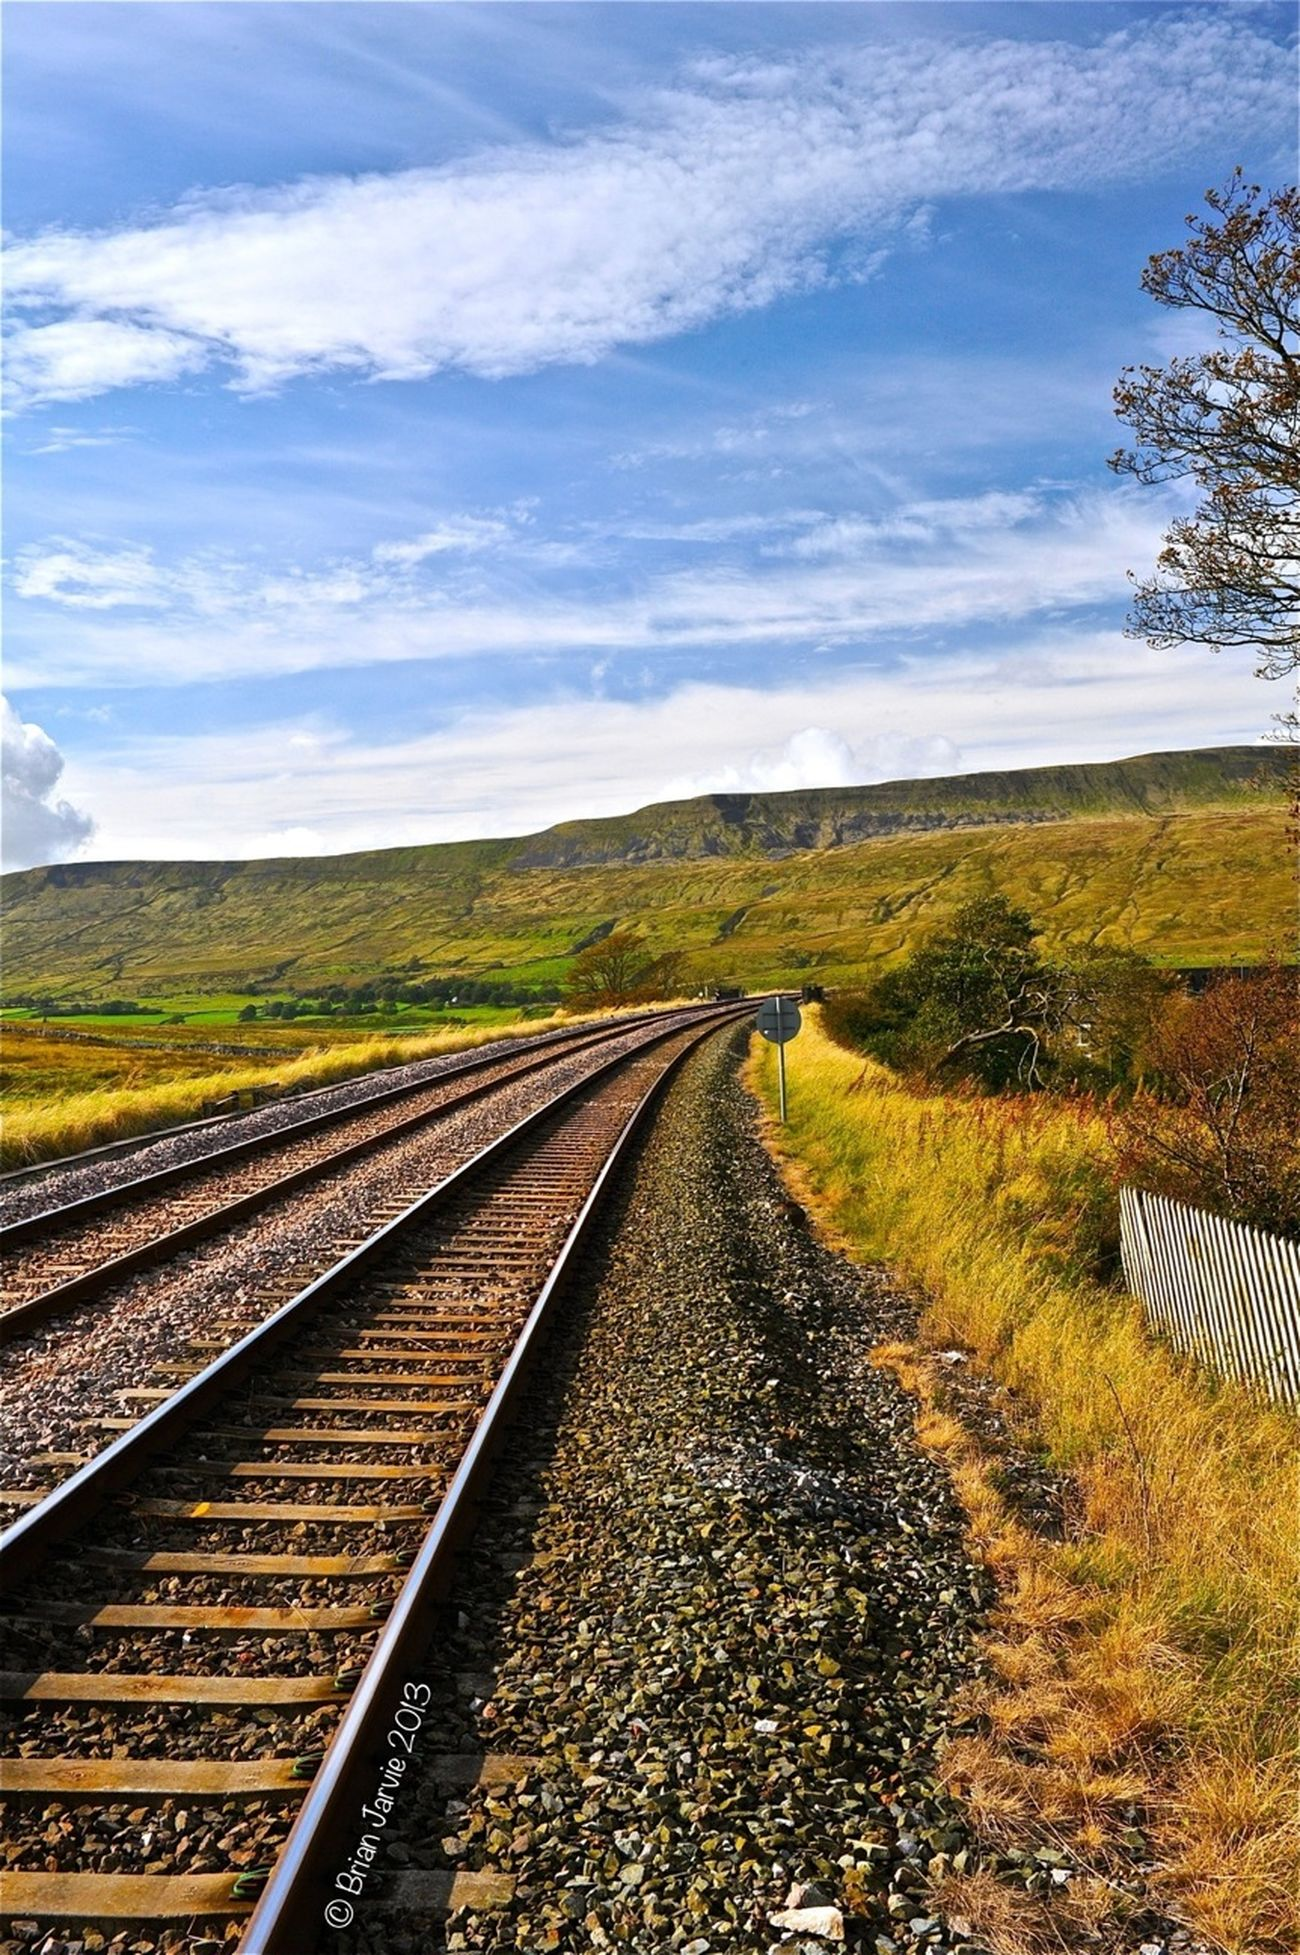 Landscape Train Tracks EyeEm Best Shots Nth Yorkshire